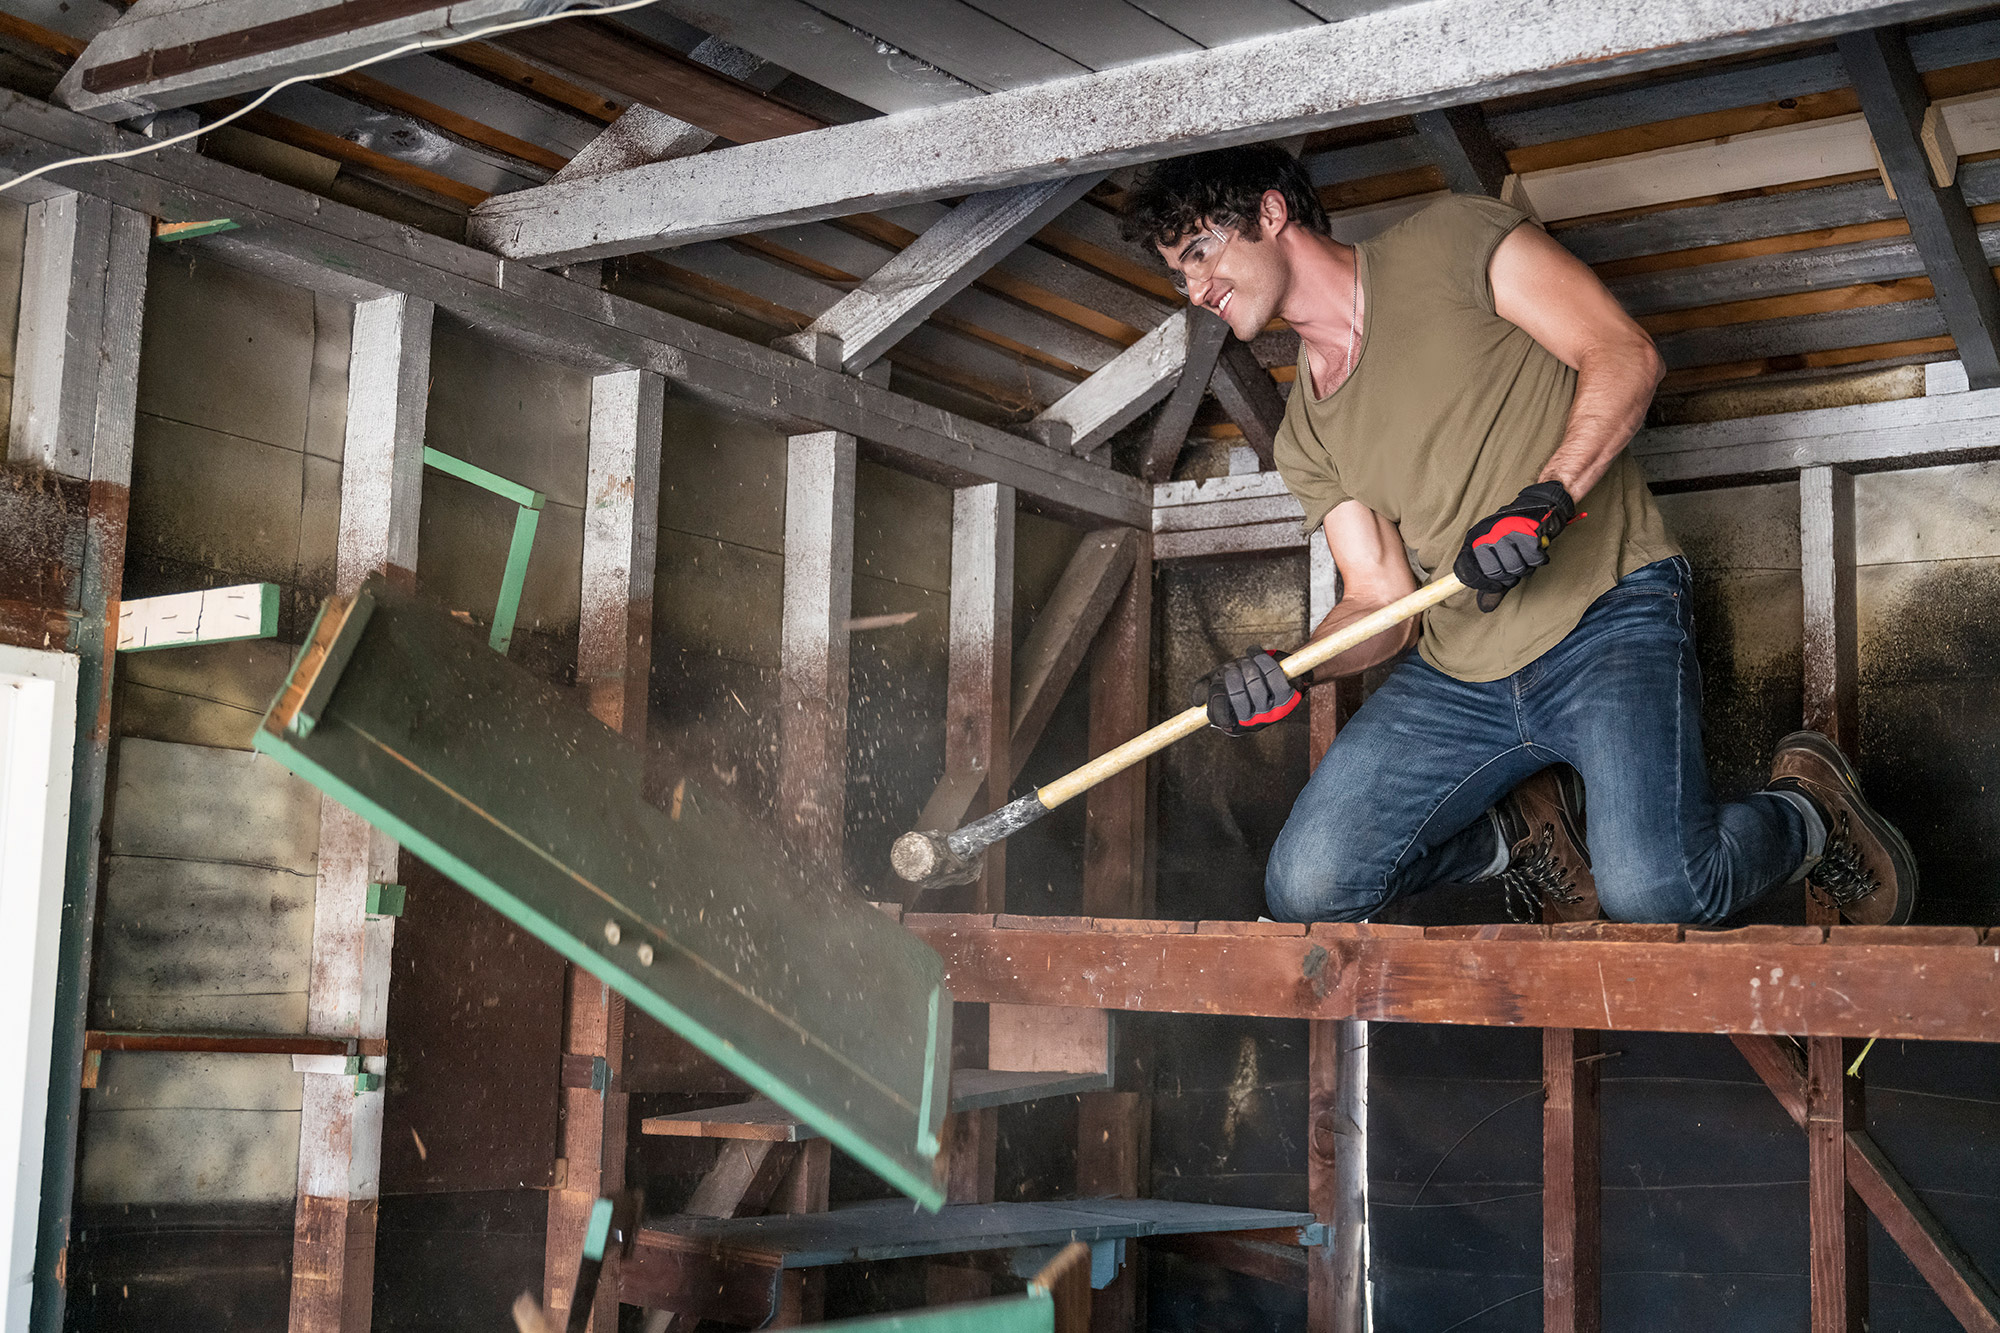 Darren Criss Bursts Into Song While Renovating Manager's Home on Celebrity IOU